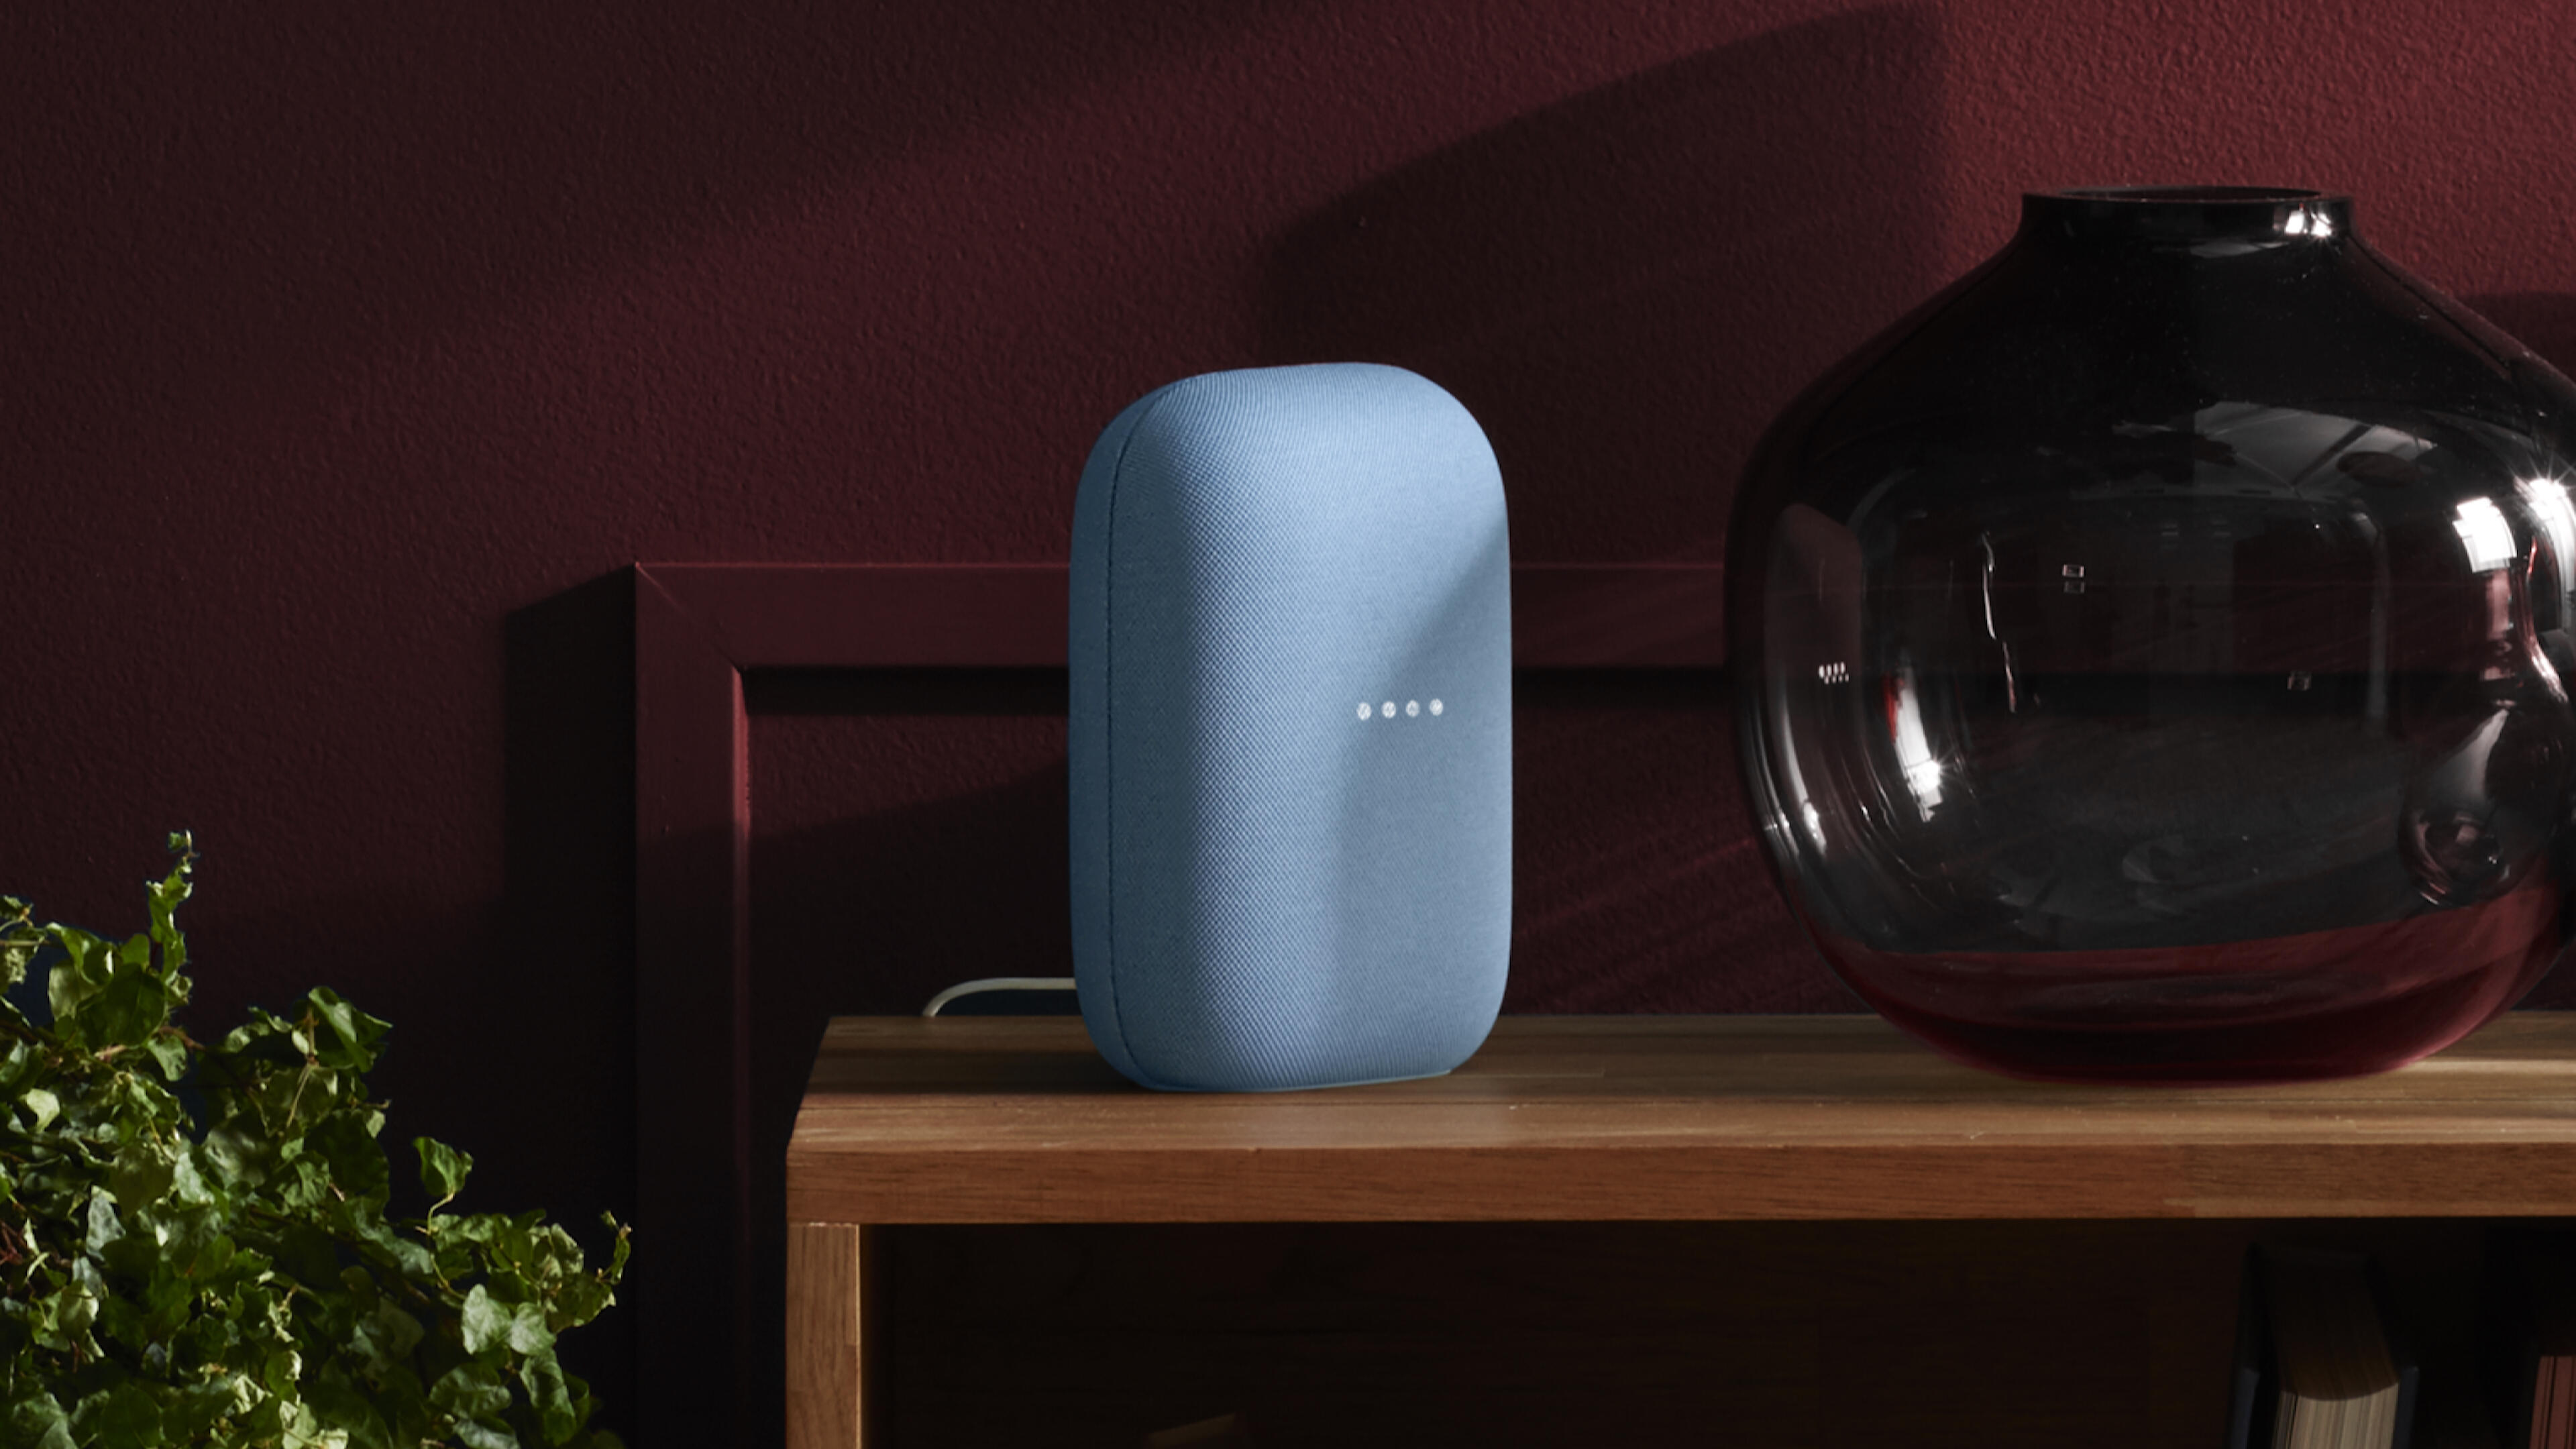 Video: What I'd like to see from Google's next smart speaker